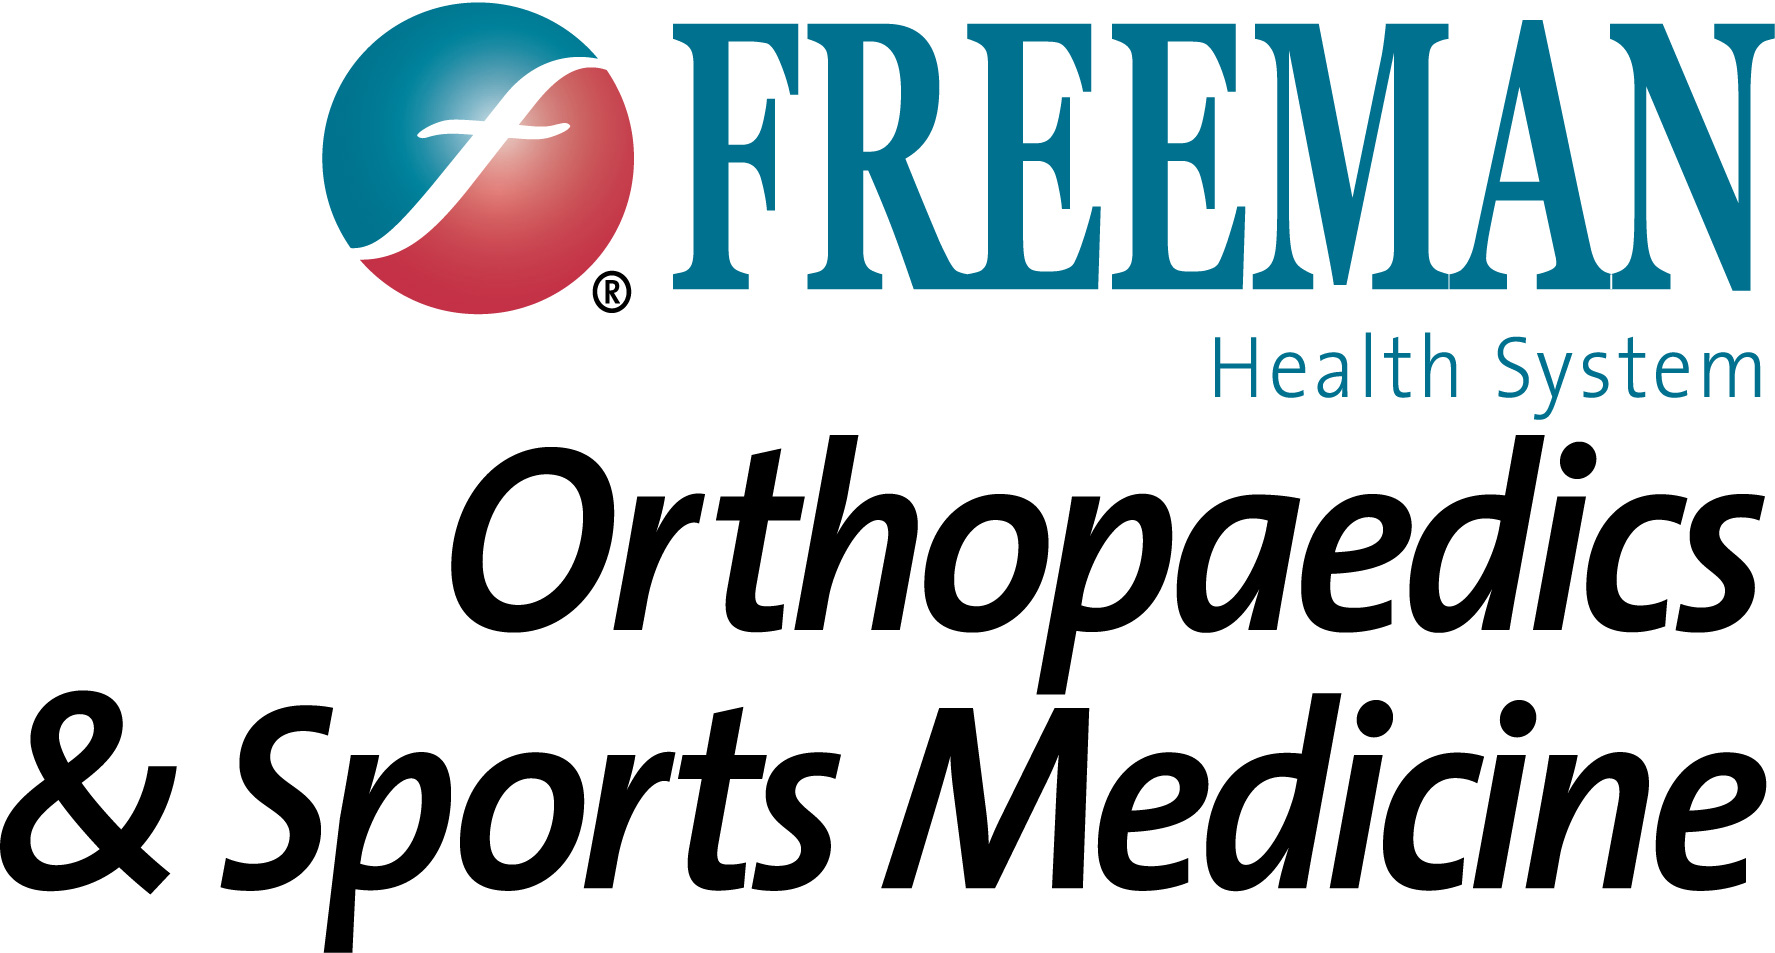 Orthopaedics and Sports Medicine Logo